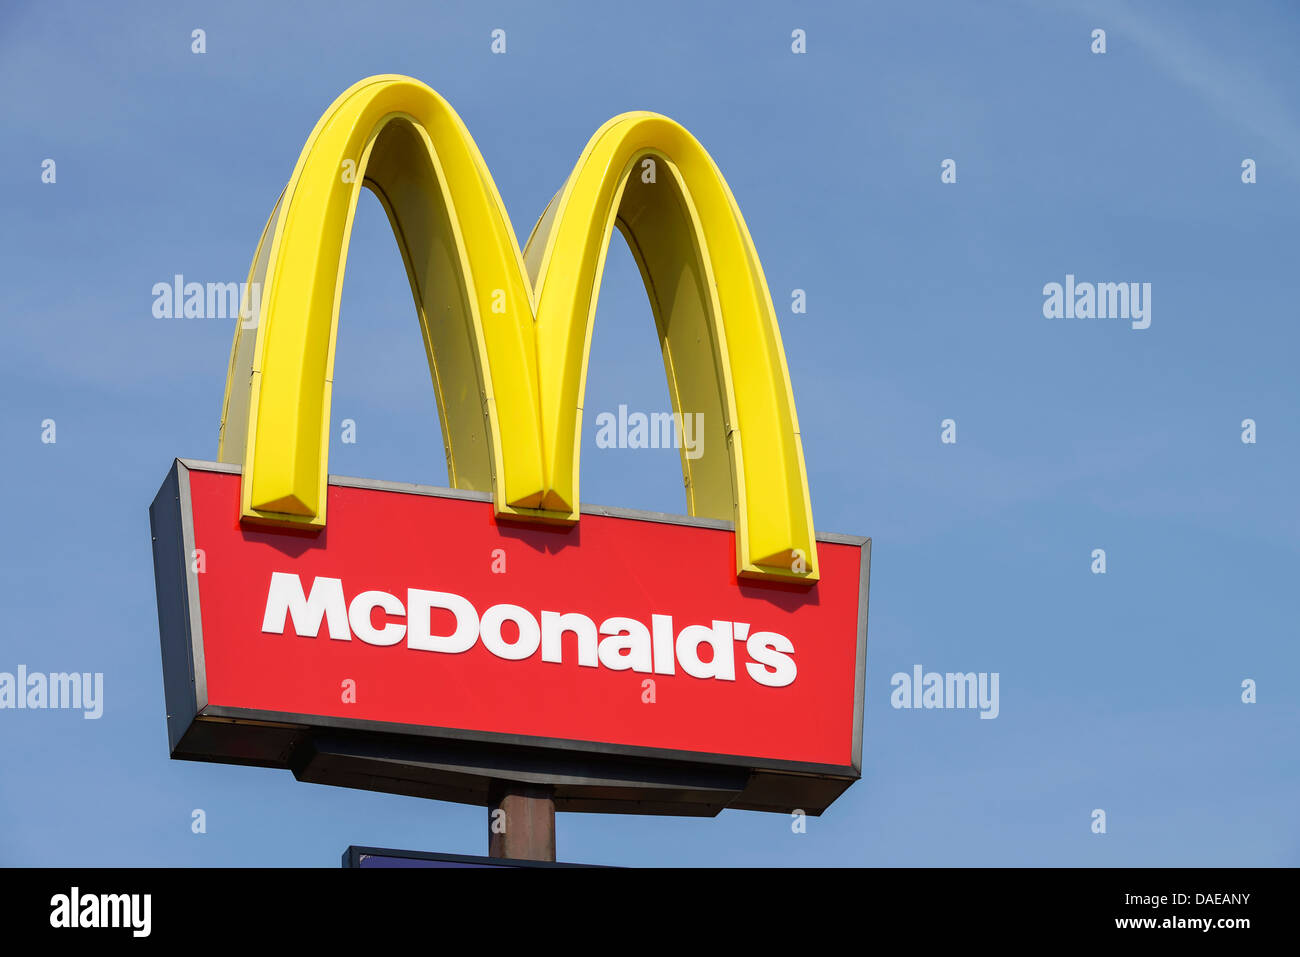 McDonalds golden arches sign - Stock Image